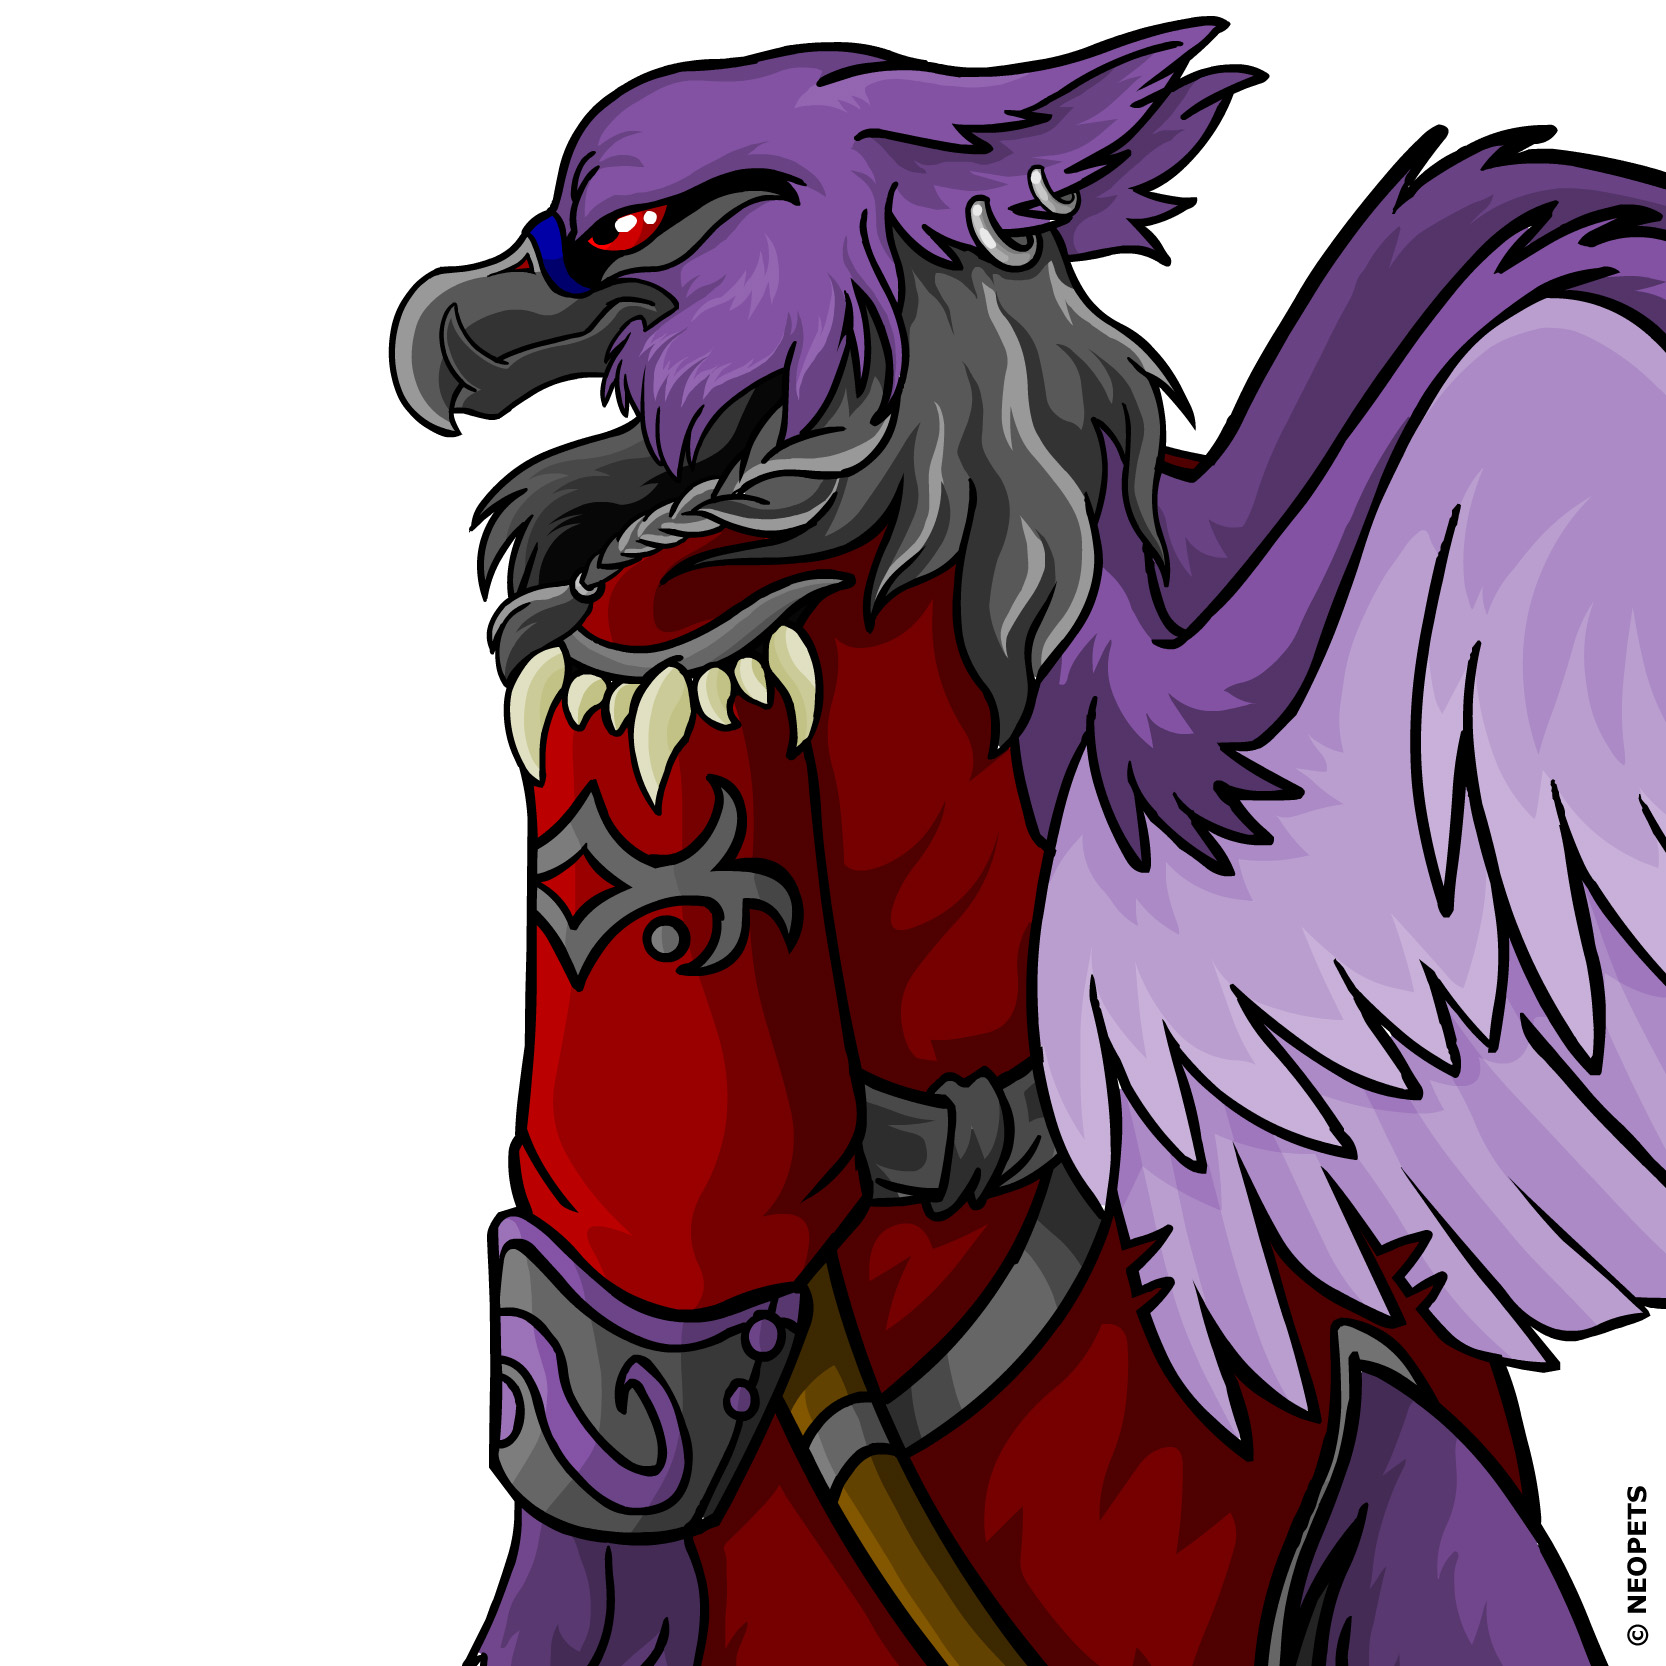 http://images.neopets.com/press/eyrie_5.jpg